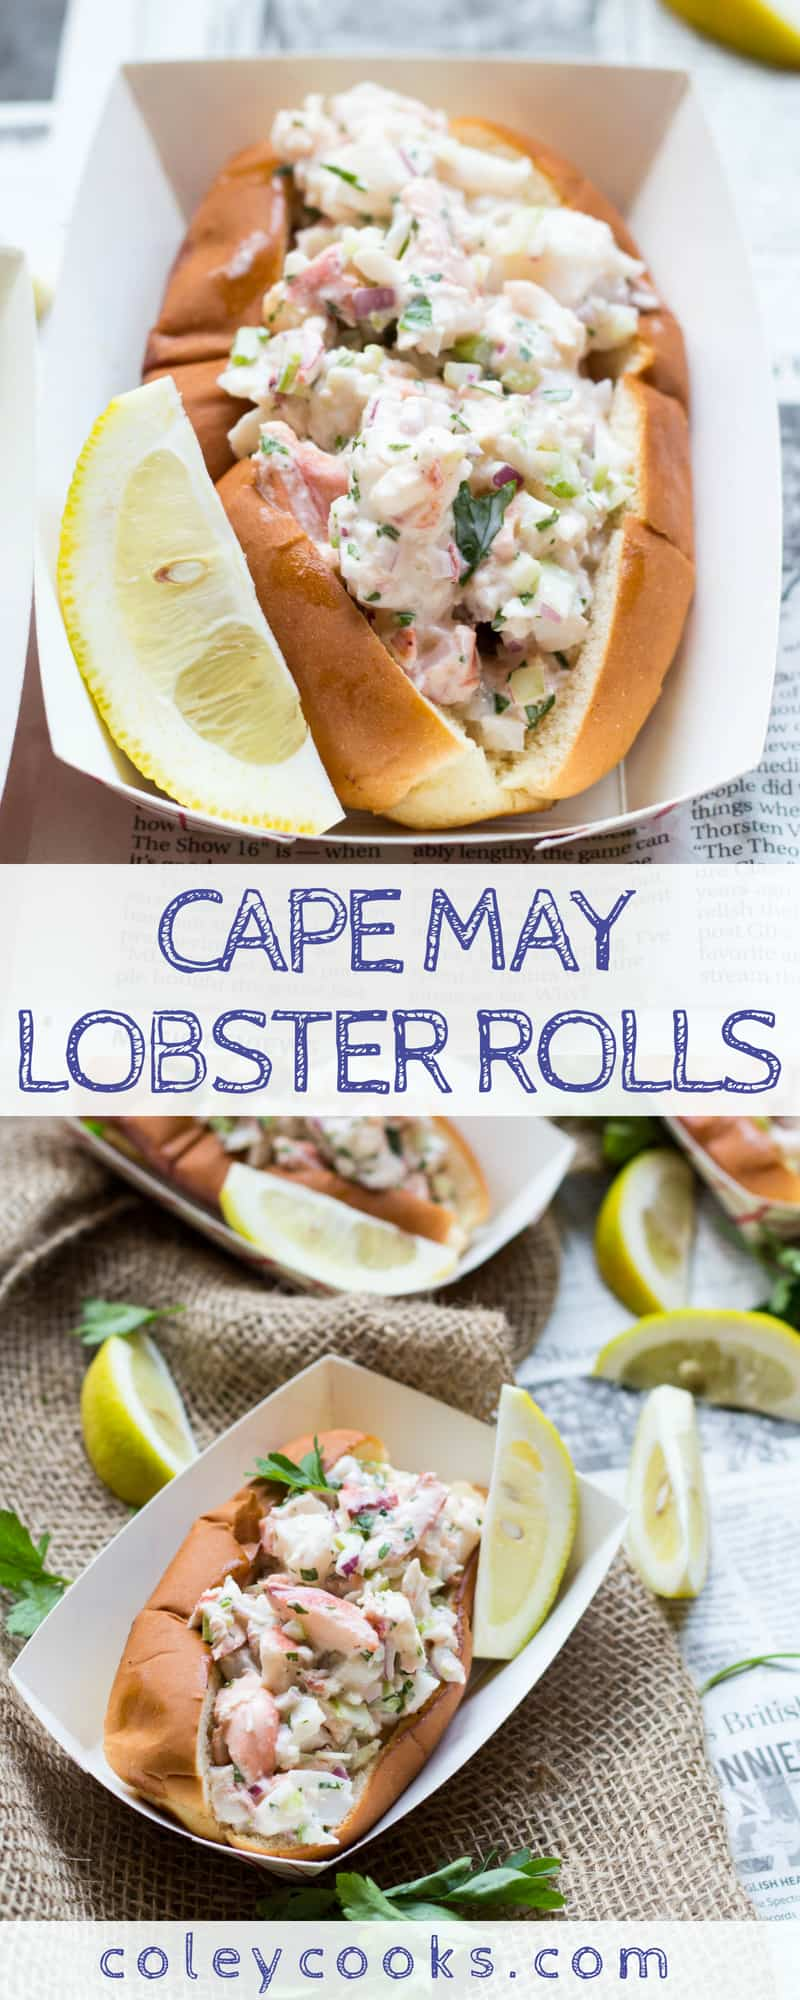 CAPE MAY LOBSTER ROLLS | This easy summer recipe for lobster rolls is my family's favorite way to prepare them! Lightly dressed big chunks of lobster stuffed inside a buttery top split bun. #recipe #lobster #capemaynj #summer | ColeyCooks.com